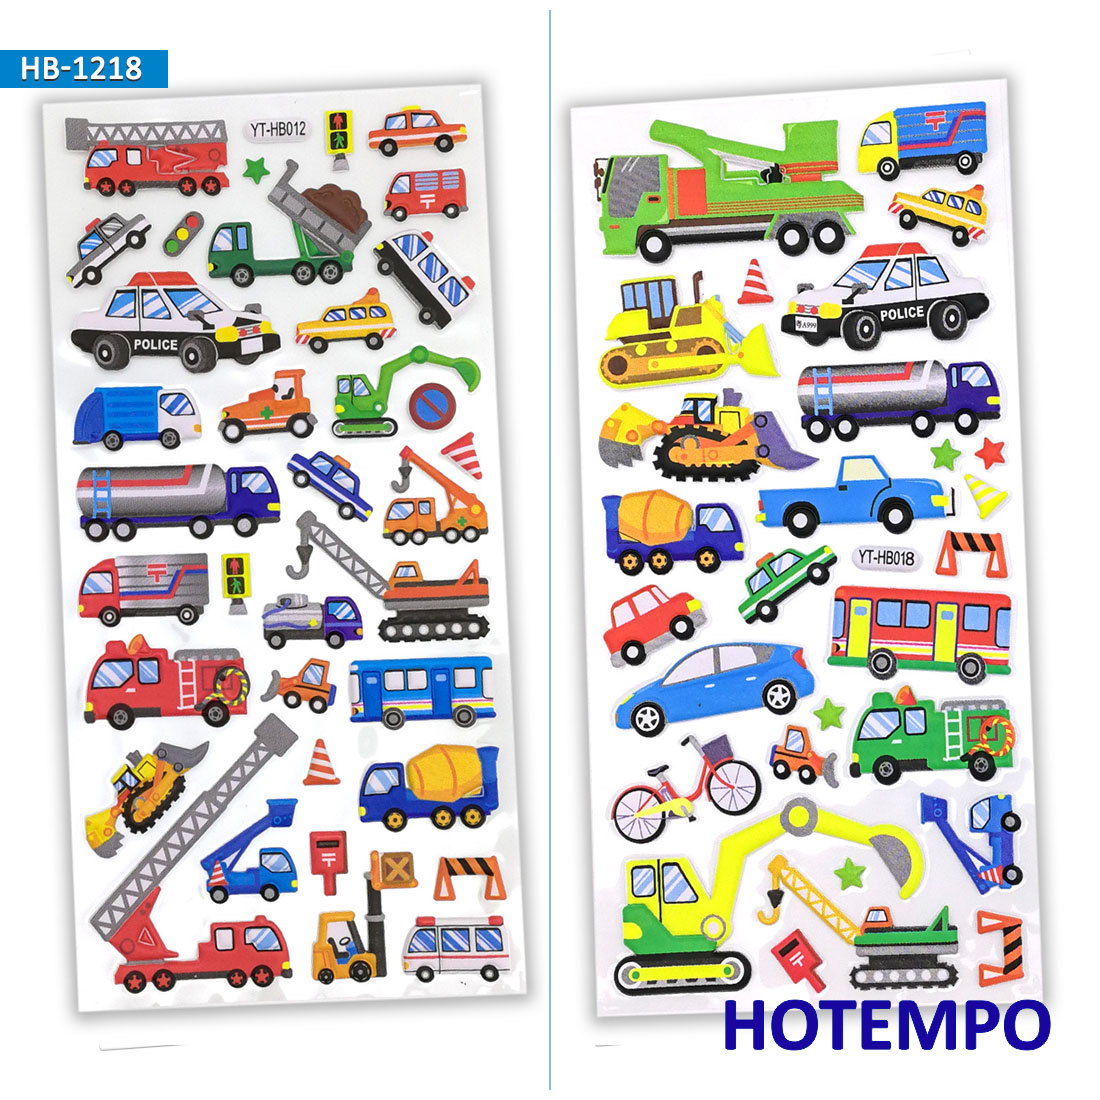 3D Foam Stickers Kids Cute Machineshop Truck City Van Car Bus Vehicle Color Cartoon For Child Gift Cup Stationery Stickers Pack